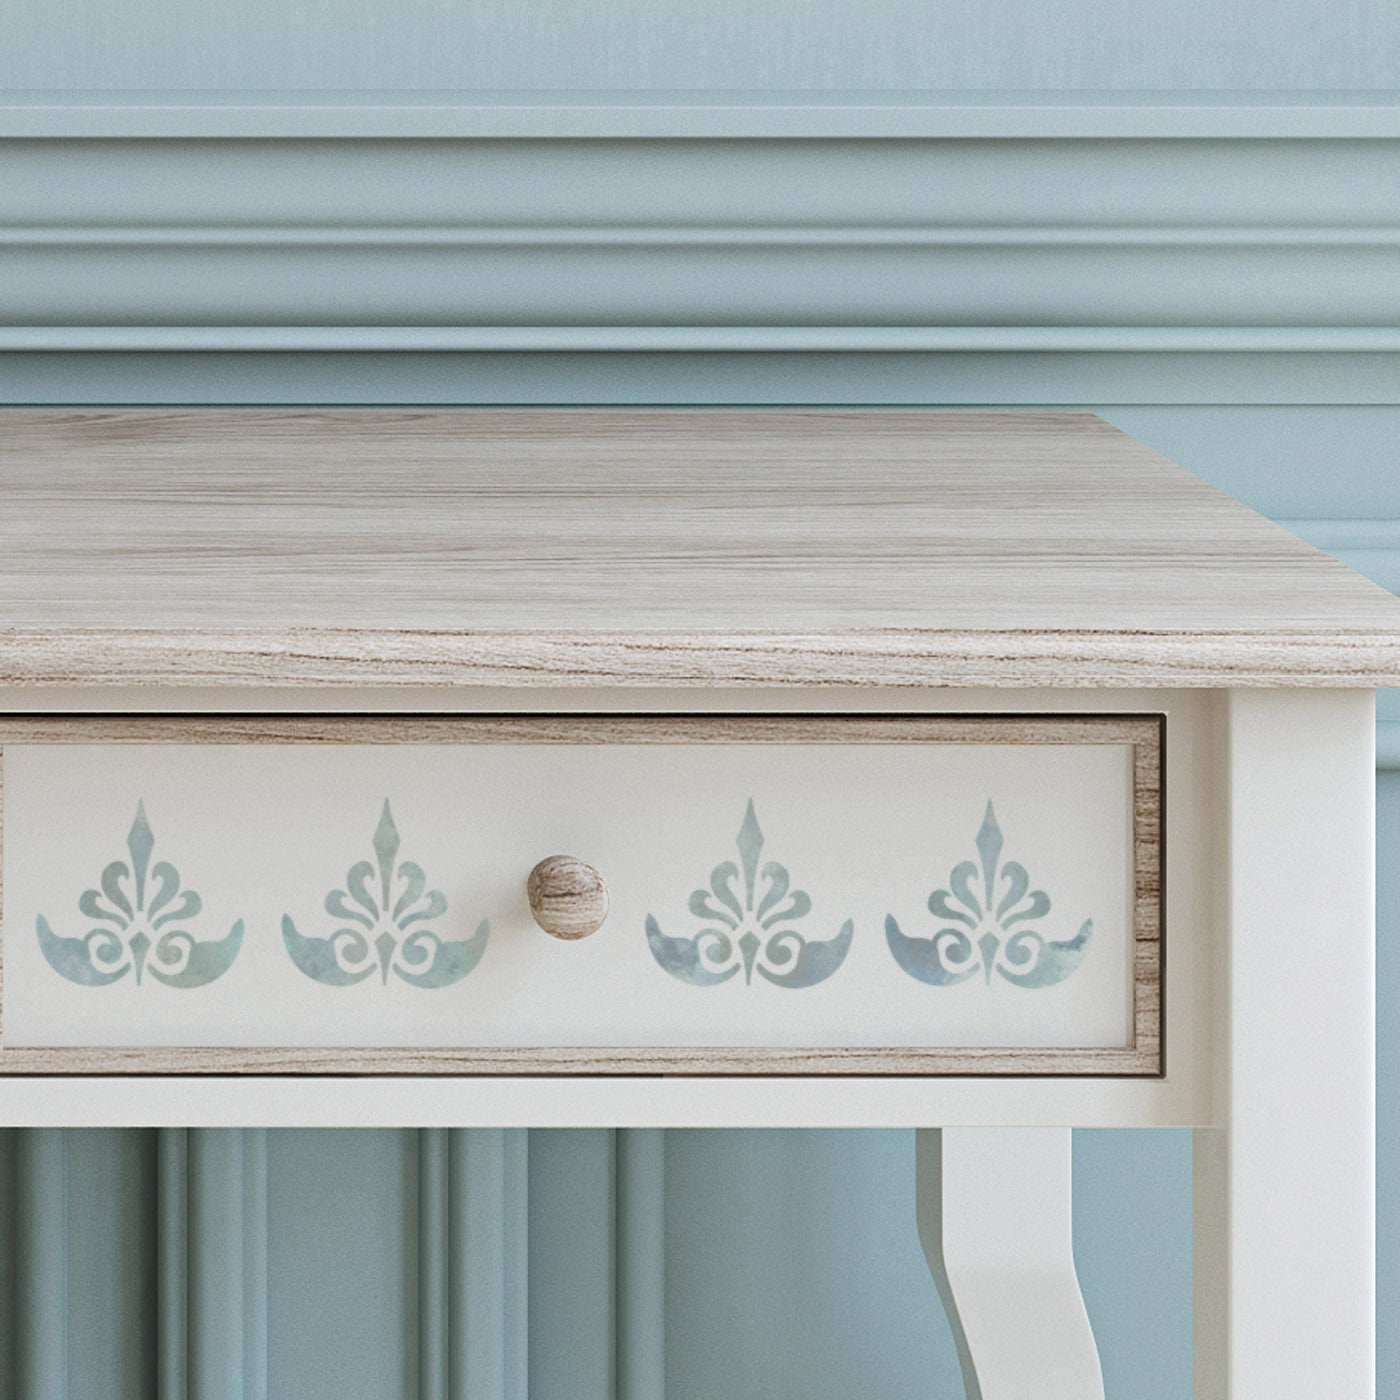 CraftStar Ornate Fleur De Lys Stencil on furniture